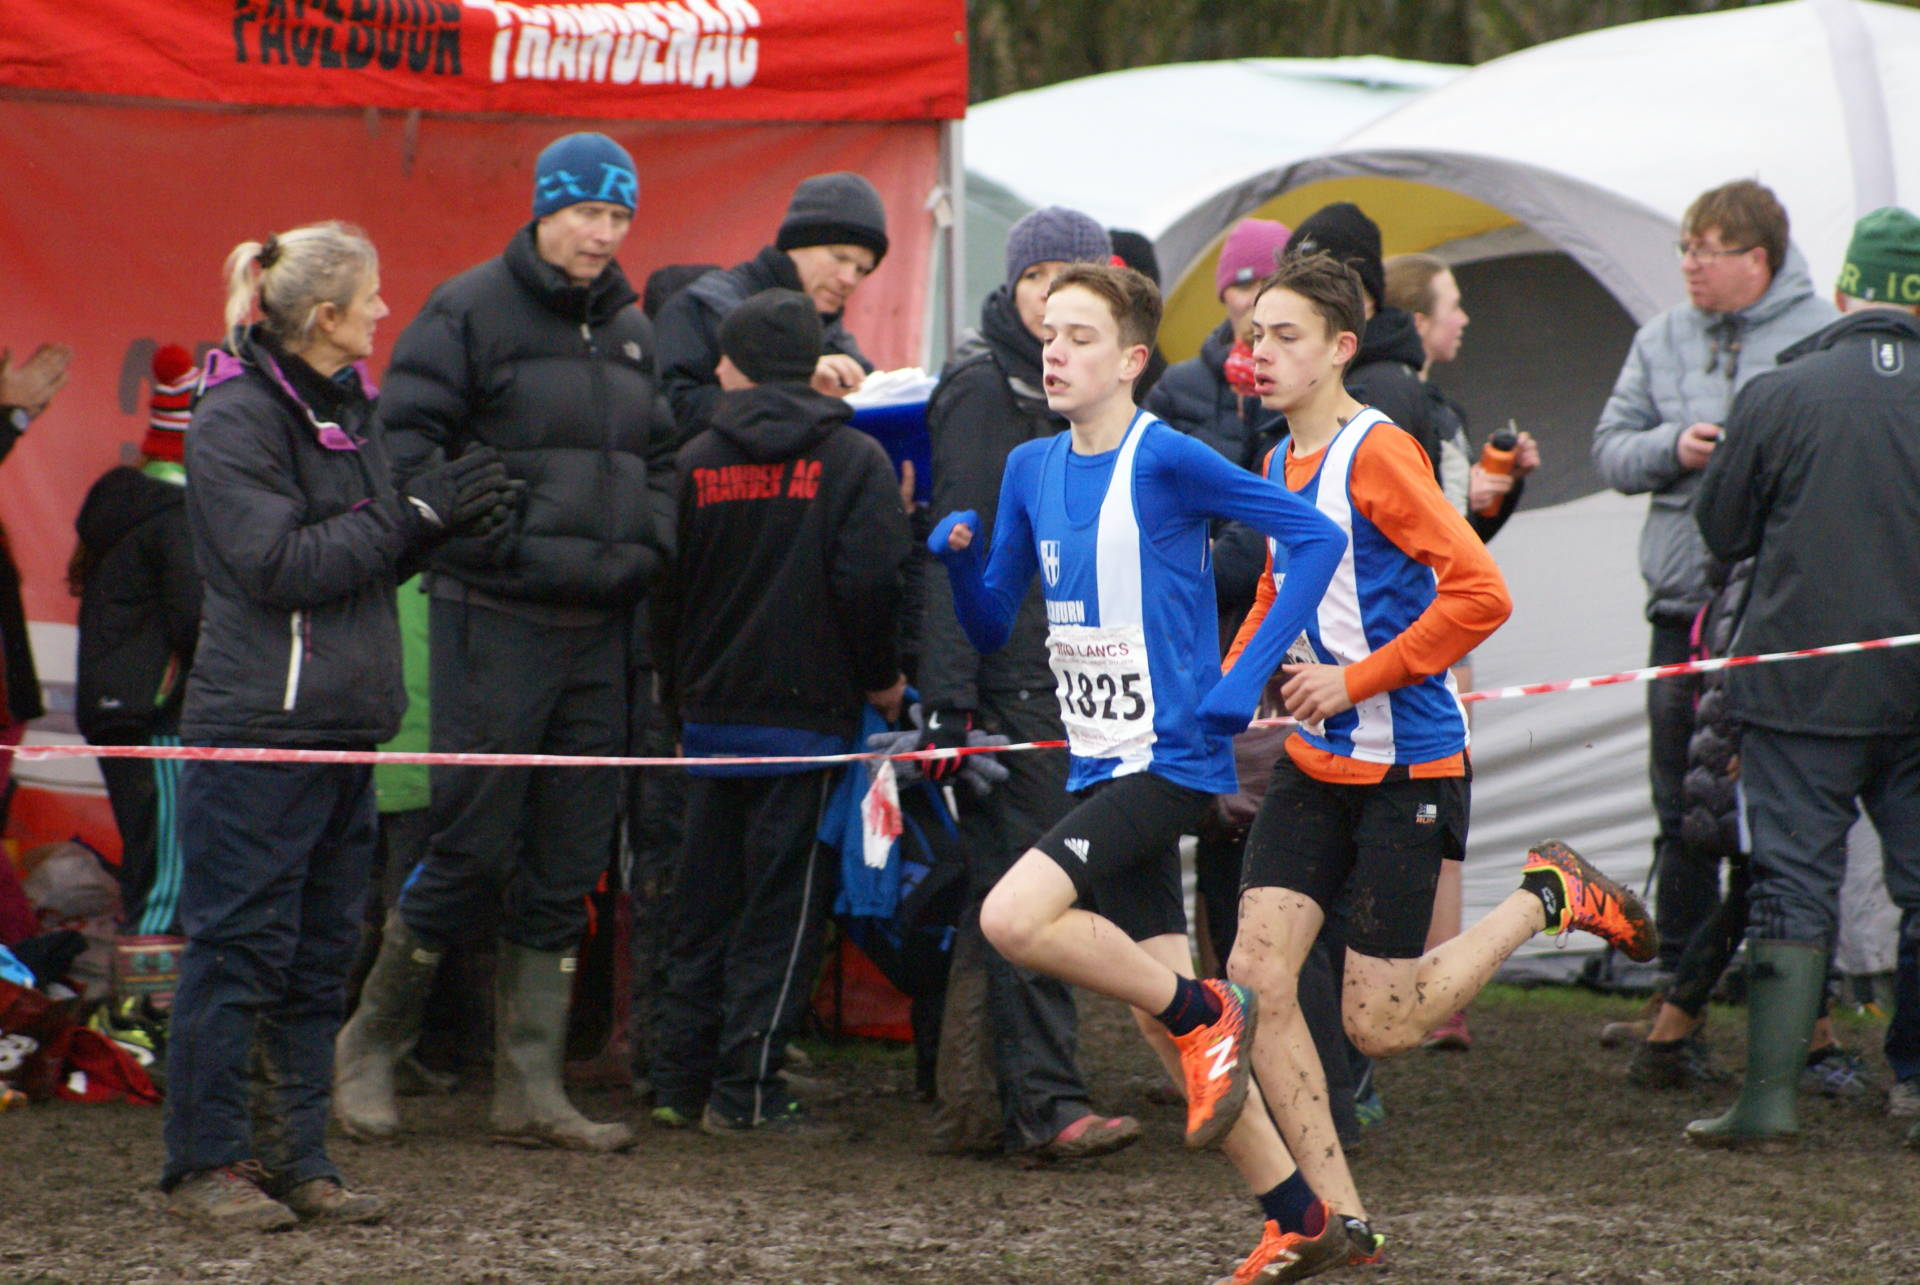 Wins for U13 and U15 Boys at Mid Lancs – Chris 1st V40 at Longridge 7 – 1st V55 for Ian In Sussex Cross Country League